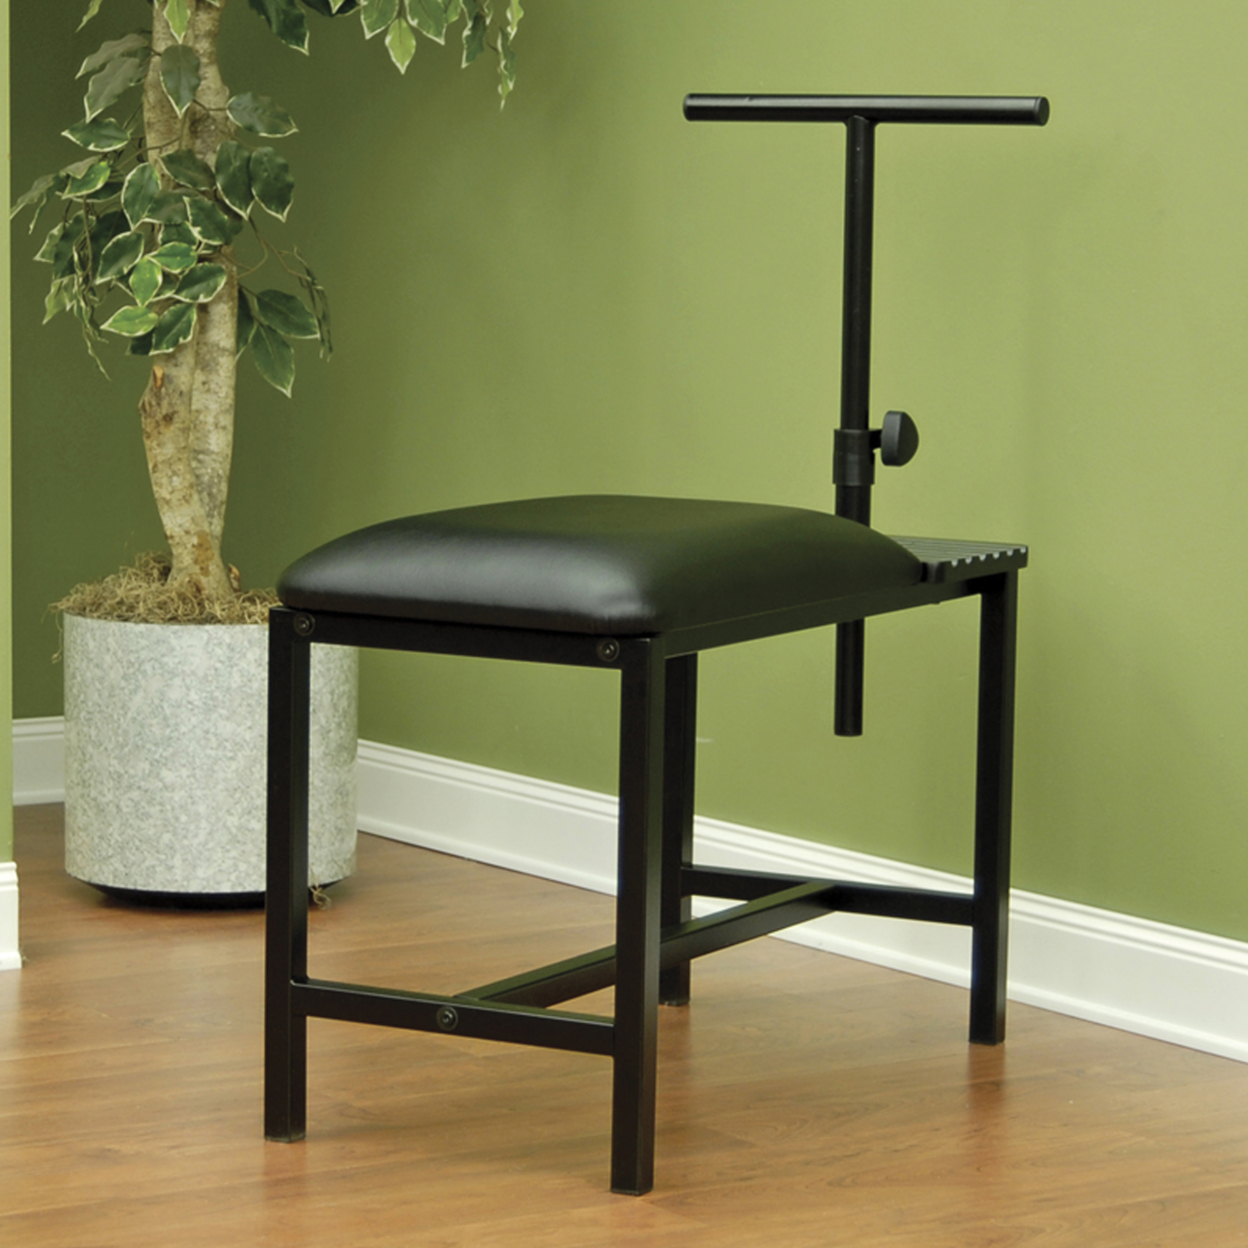 Offex Home Office Studio Bench - Black